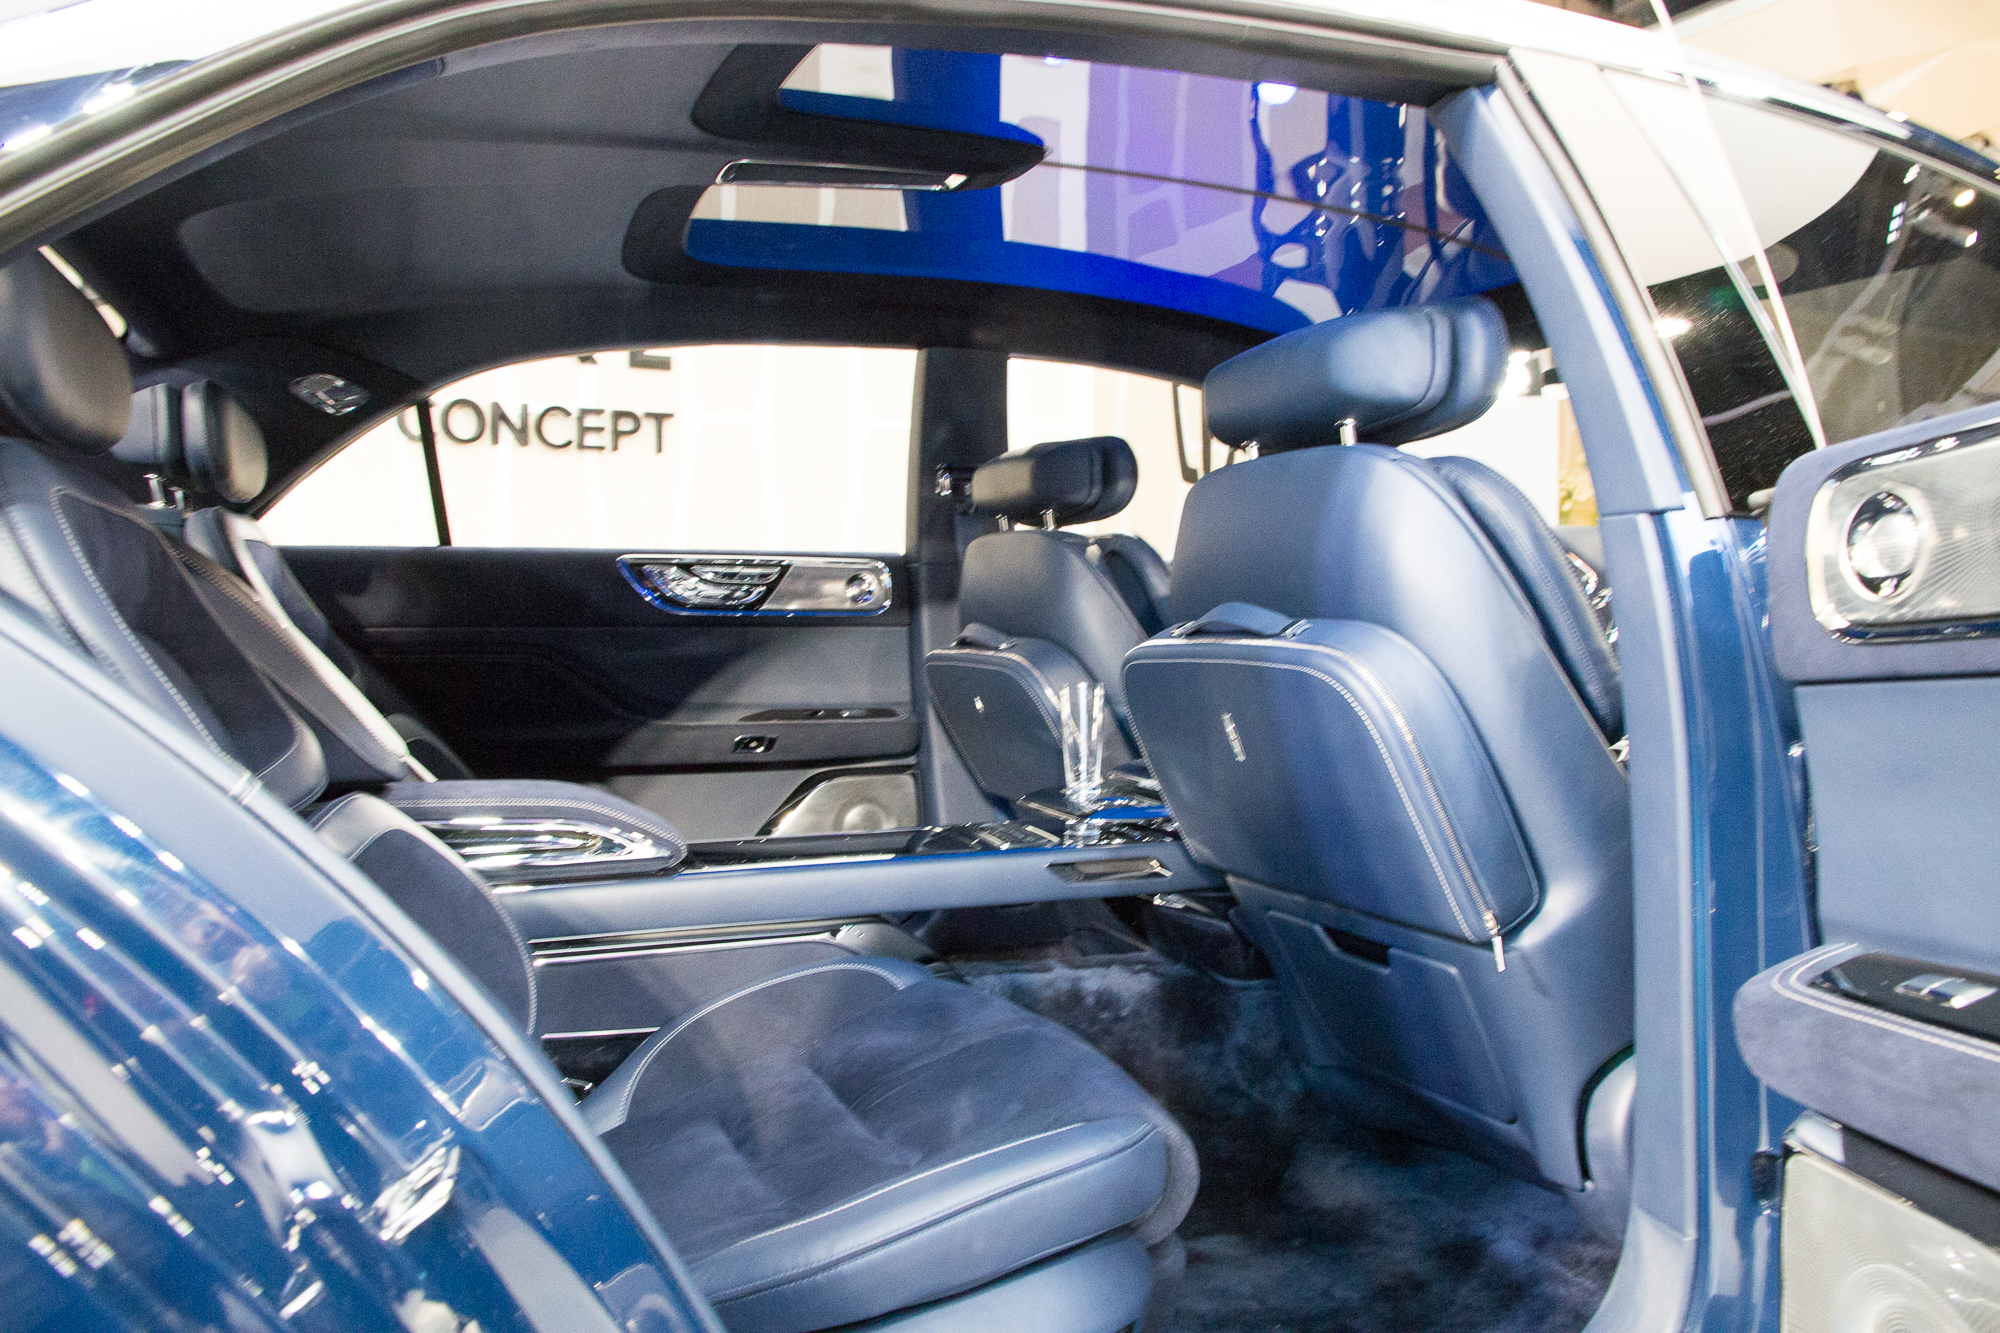 2015 - [Lincoln] Continental Lincoln-continental-concept-unveiling-new-york-city-march-29-2015_100506002_h